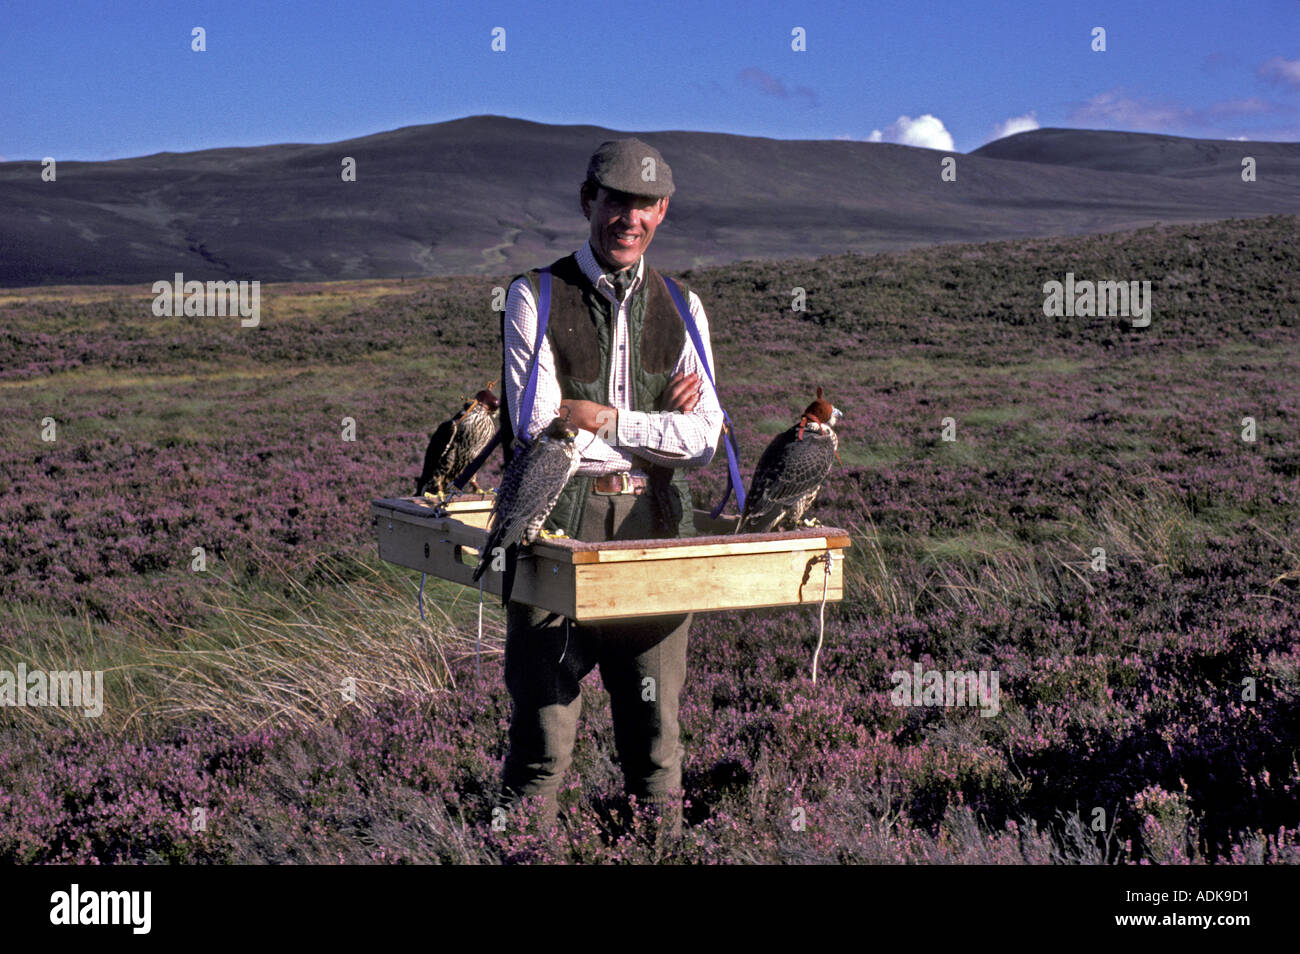 Sports and Pastimes Falconry Falconer with falcons on a cadge - Stock Image